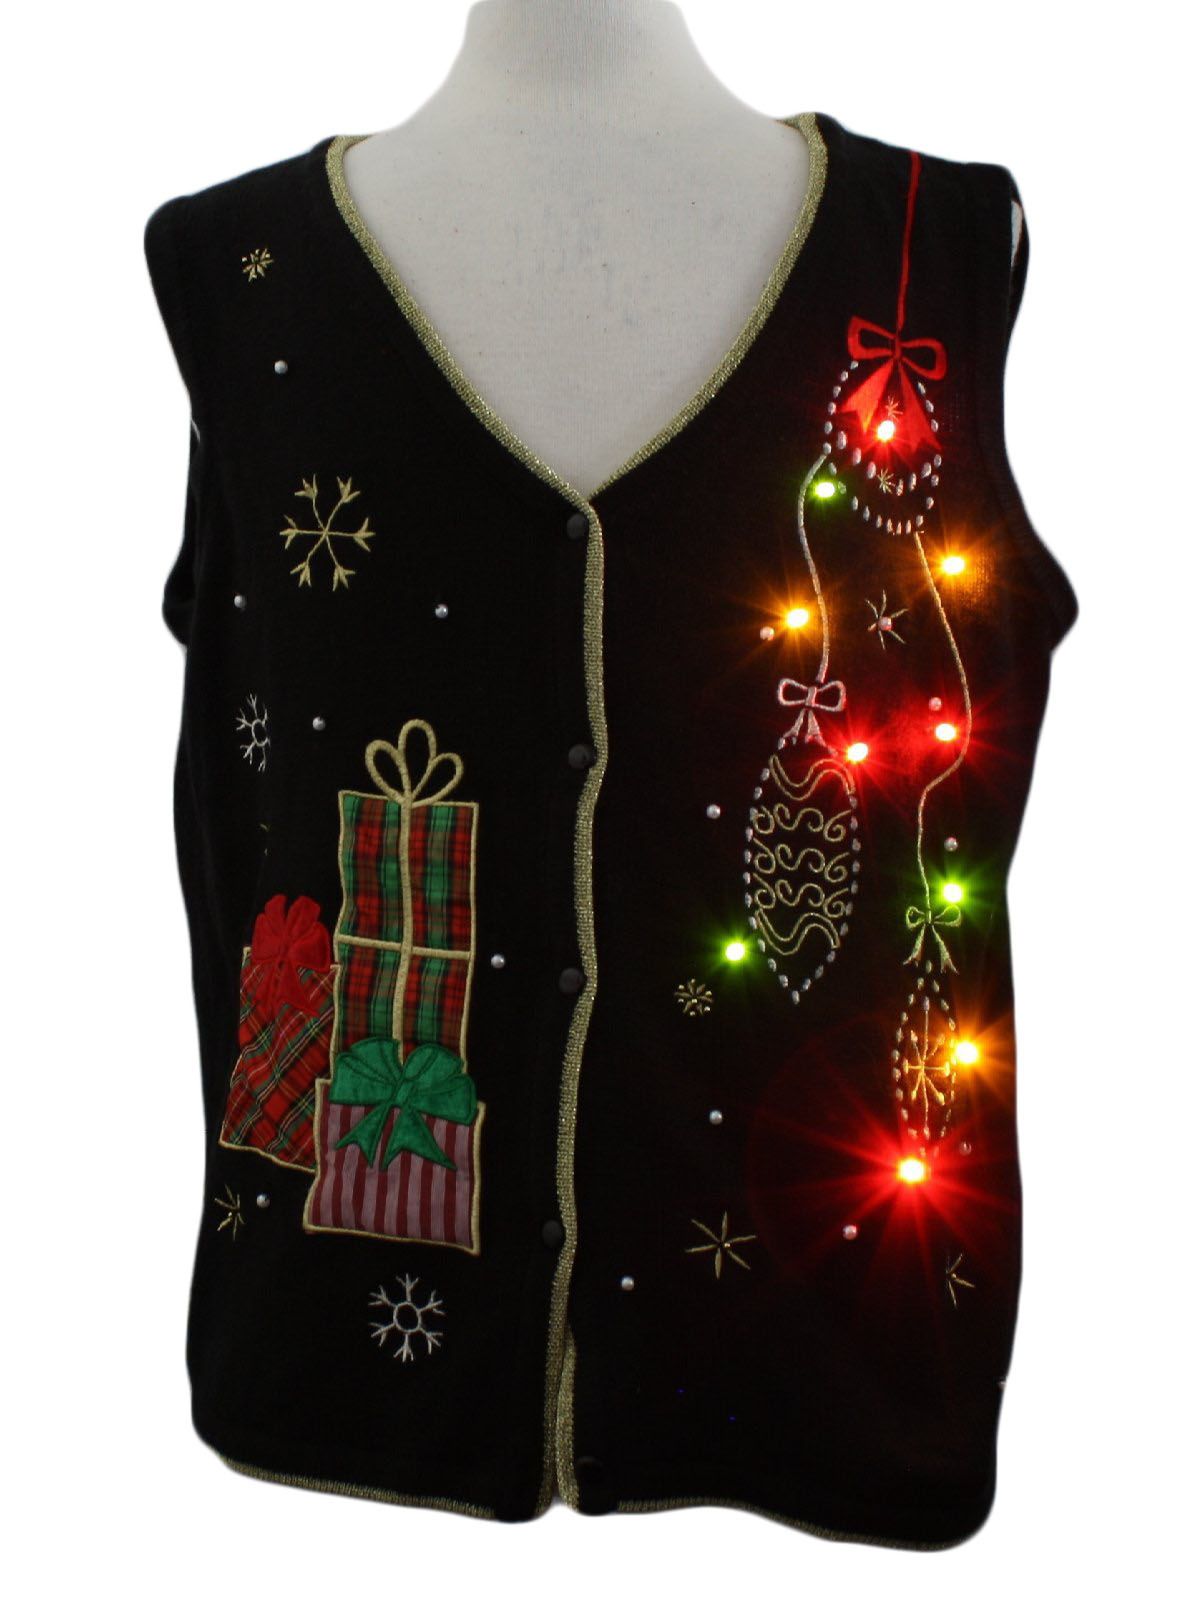 Christmas sweater vests